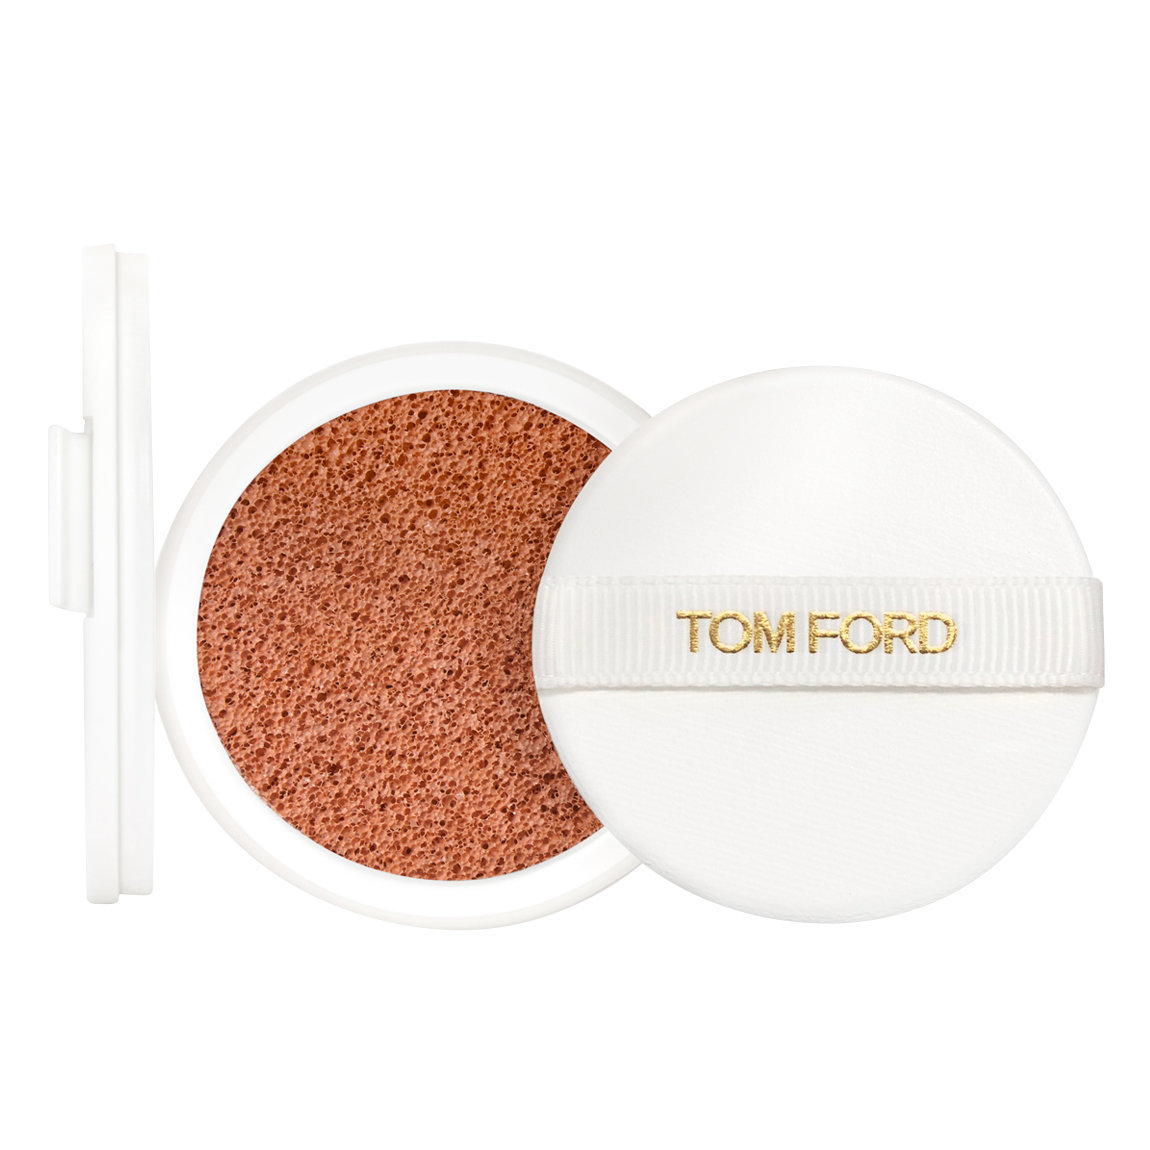 TOM FORD Soleil Glow Tone Up Foundation Hydrating Cushion Compact Refill 3 Peach Glow Tone Up alternative view 1.